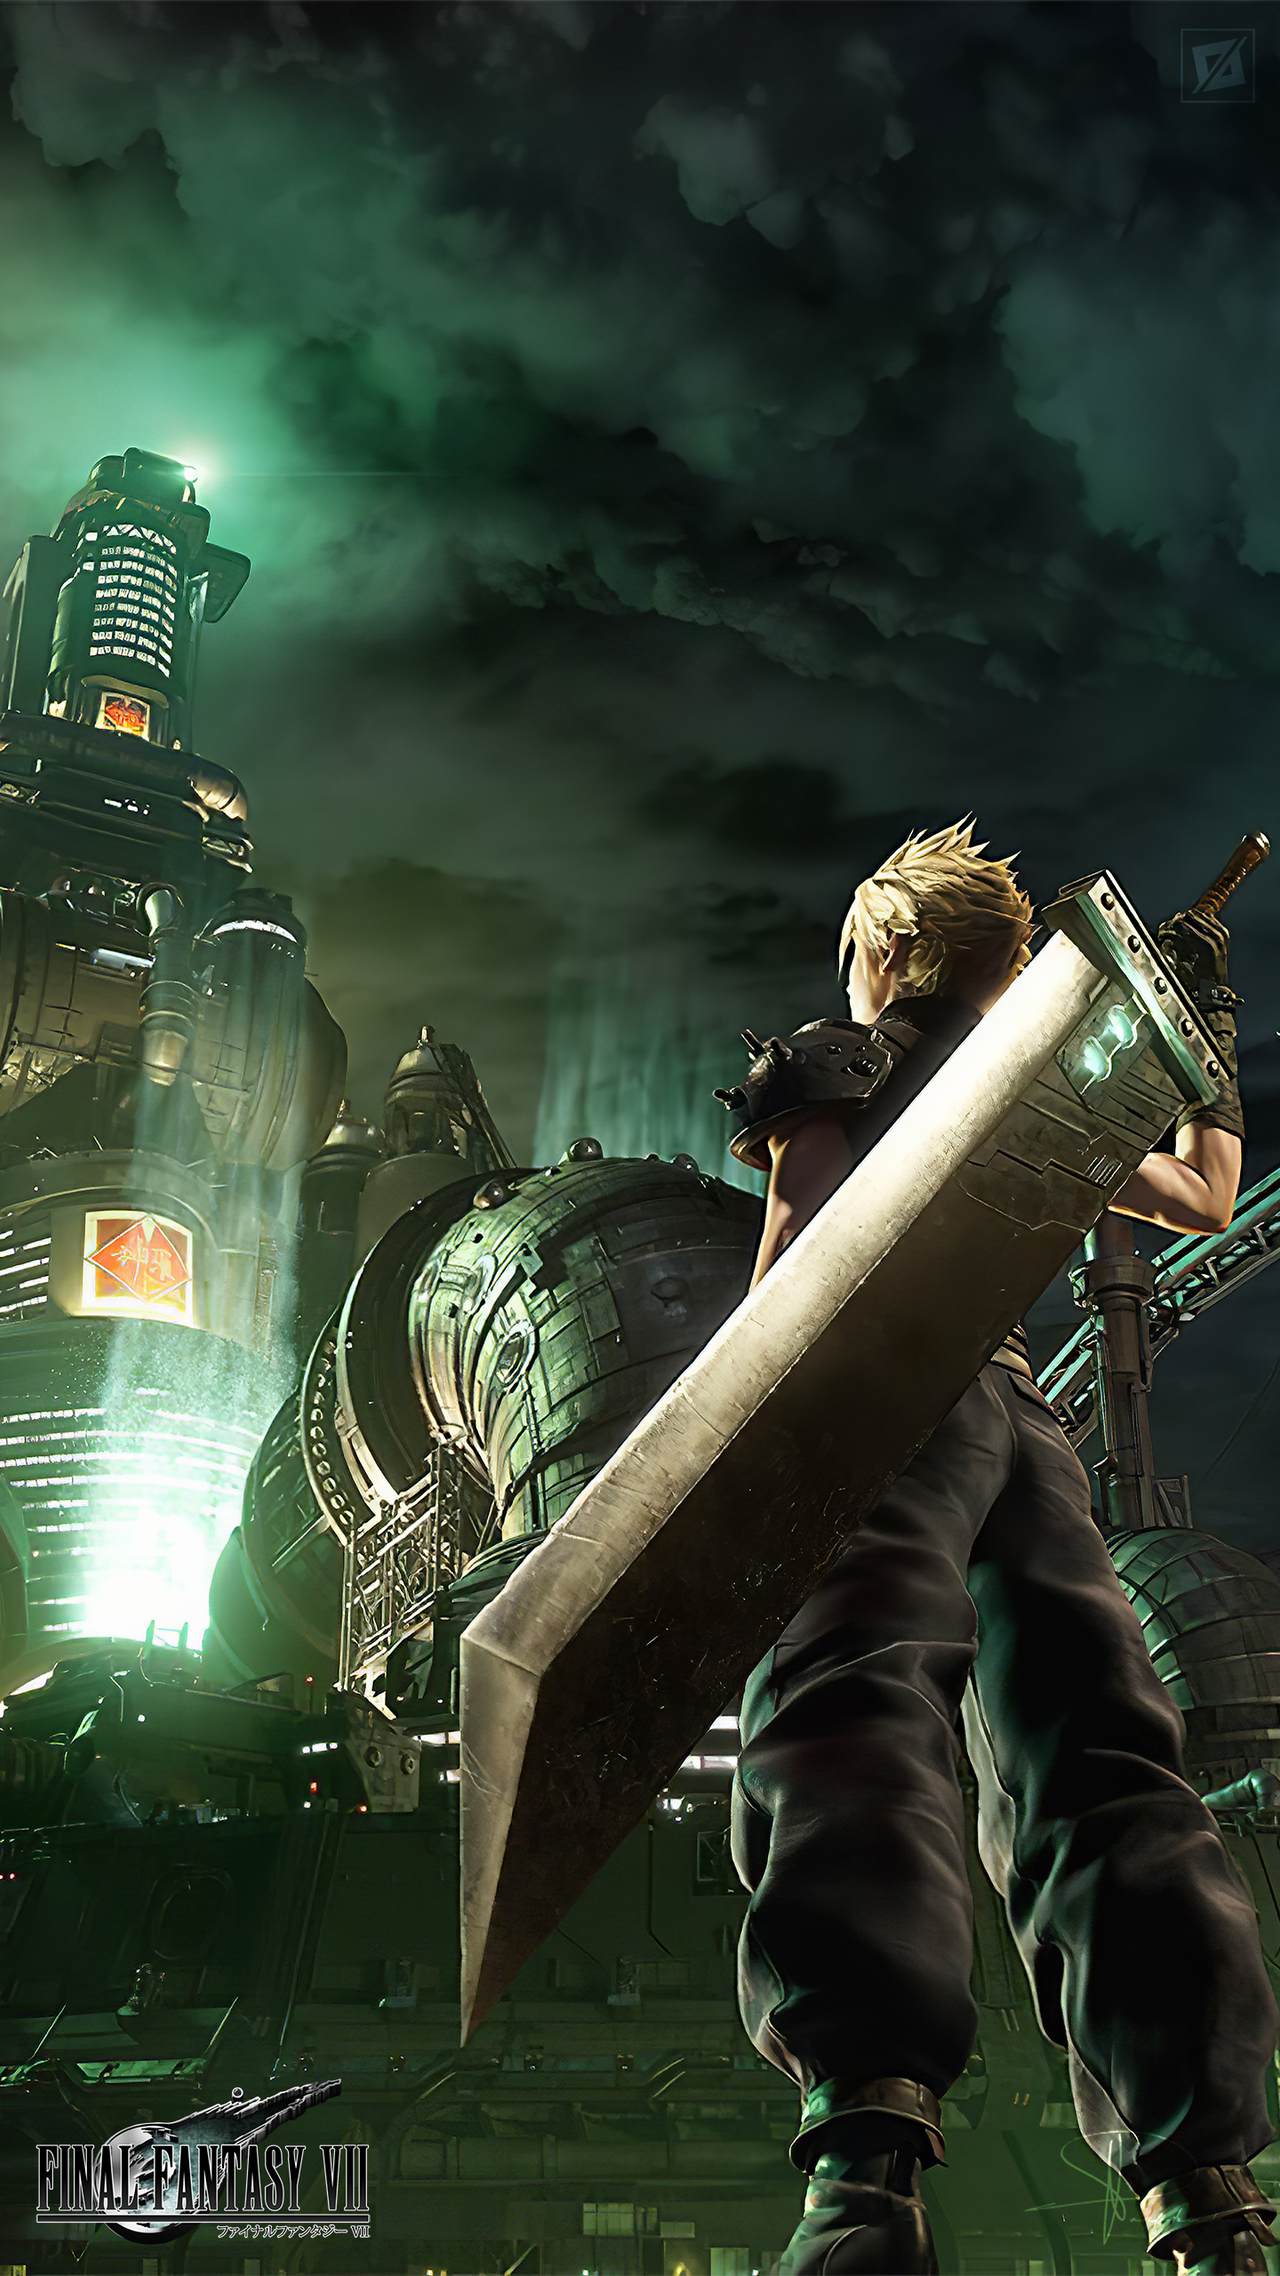 Final Fantasy Vii Remake Album Art Mobile 2k By